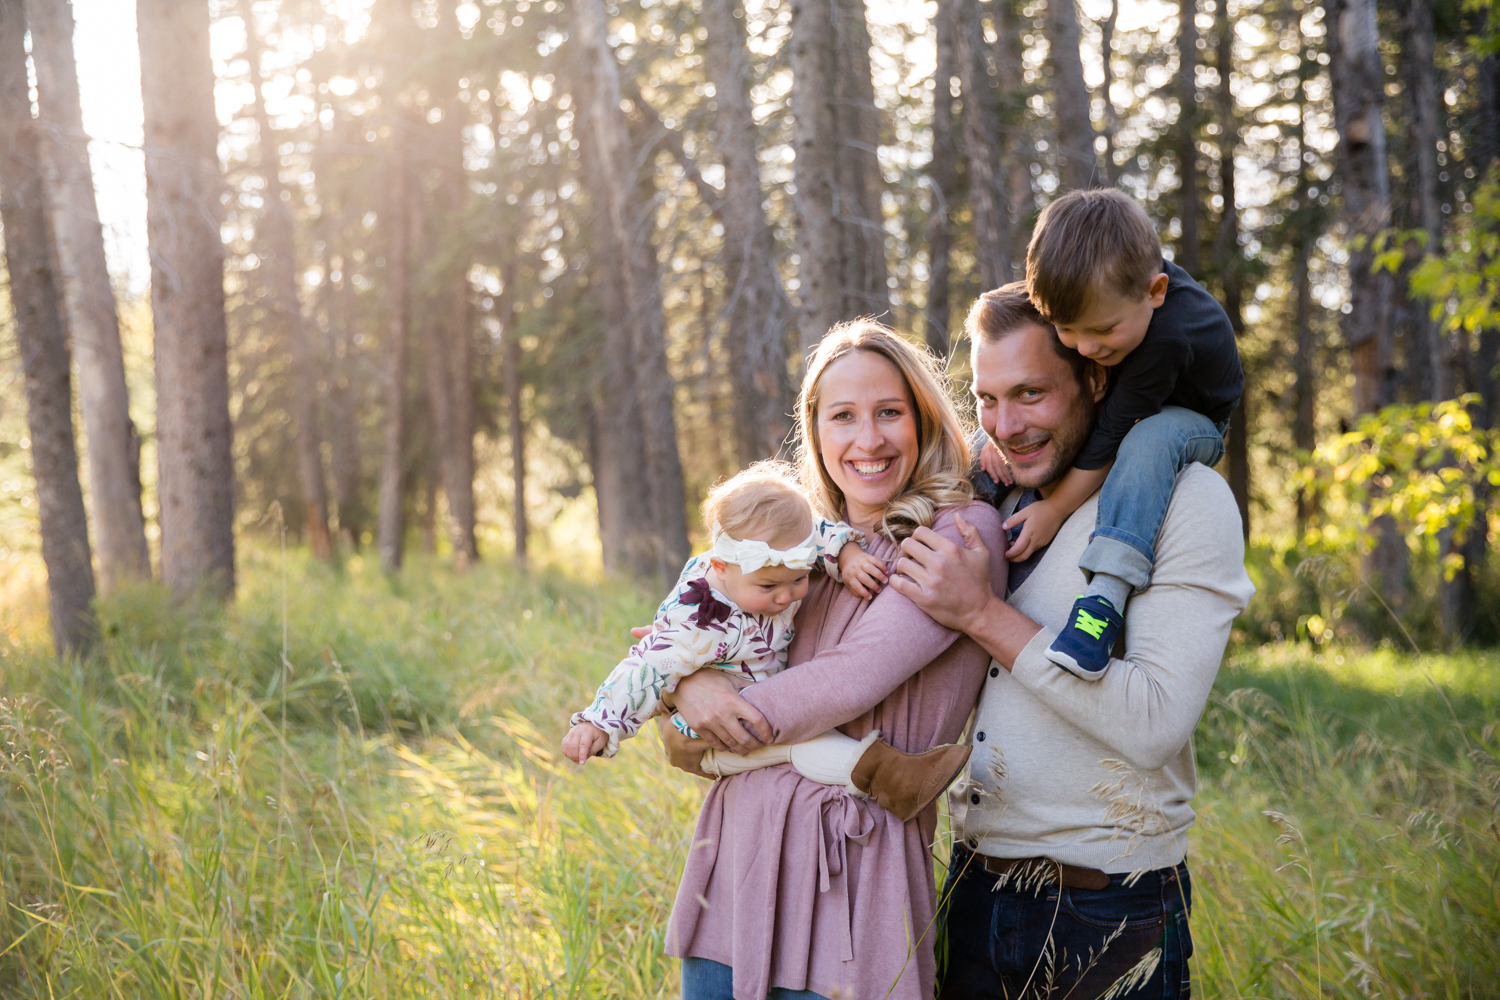 portrait of a family in a green field together looking at the camera | Calgary family photographer